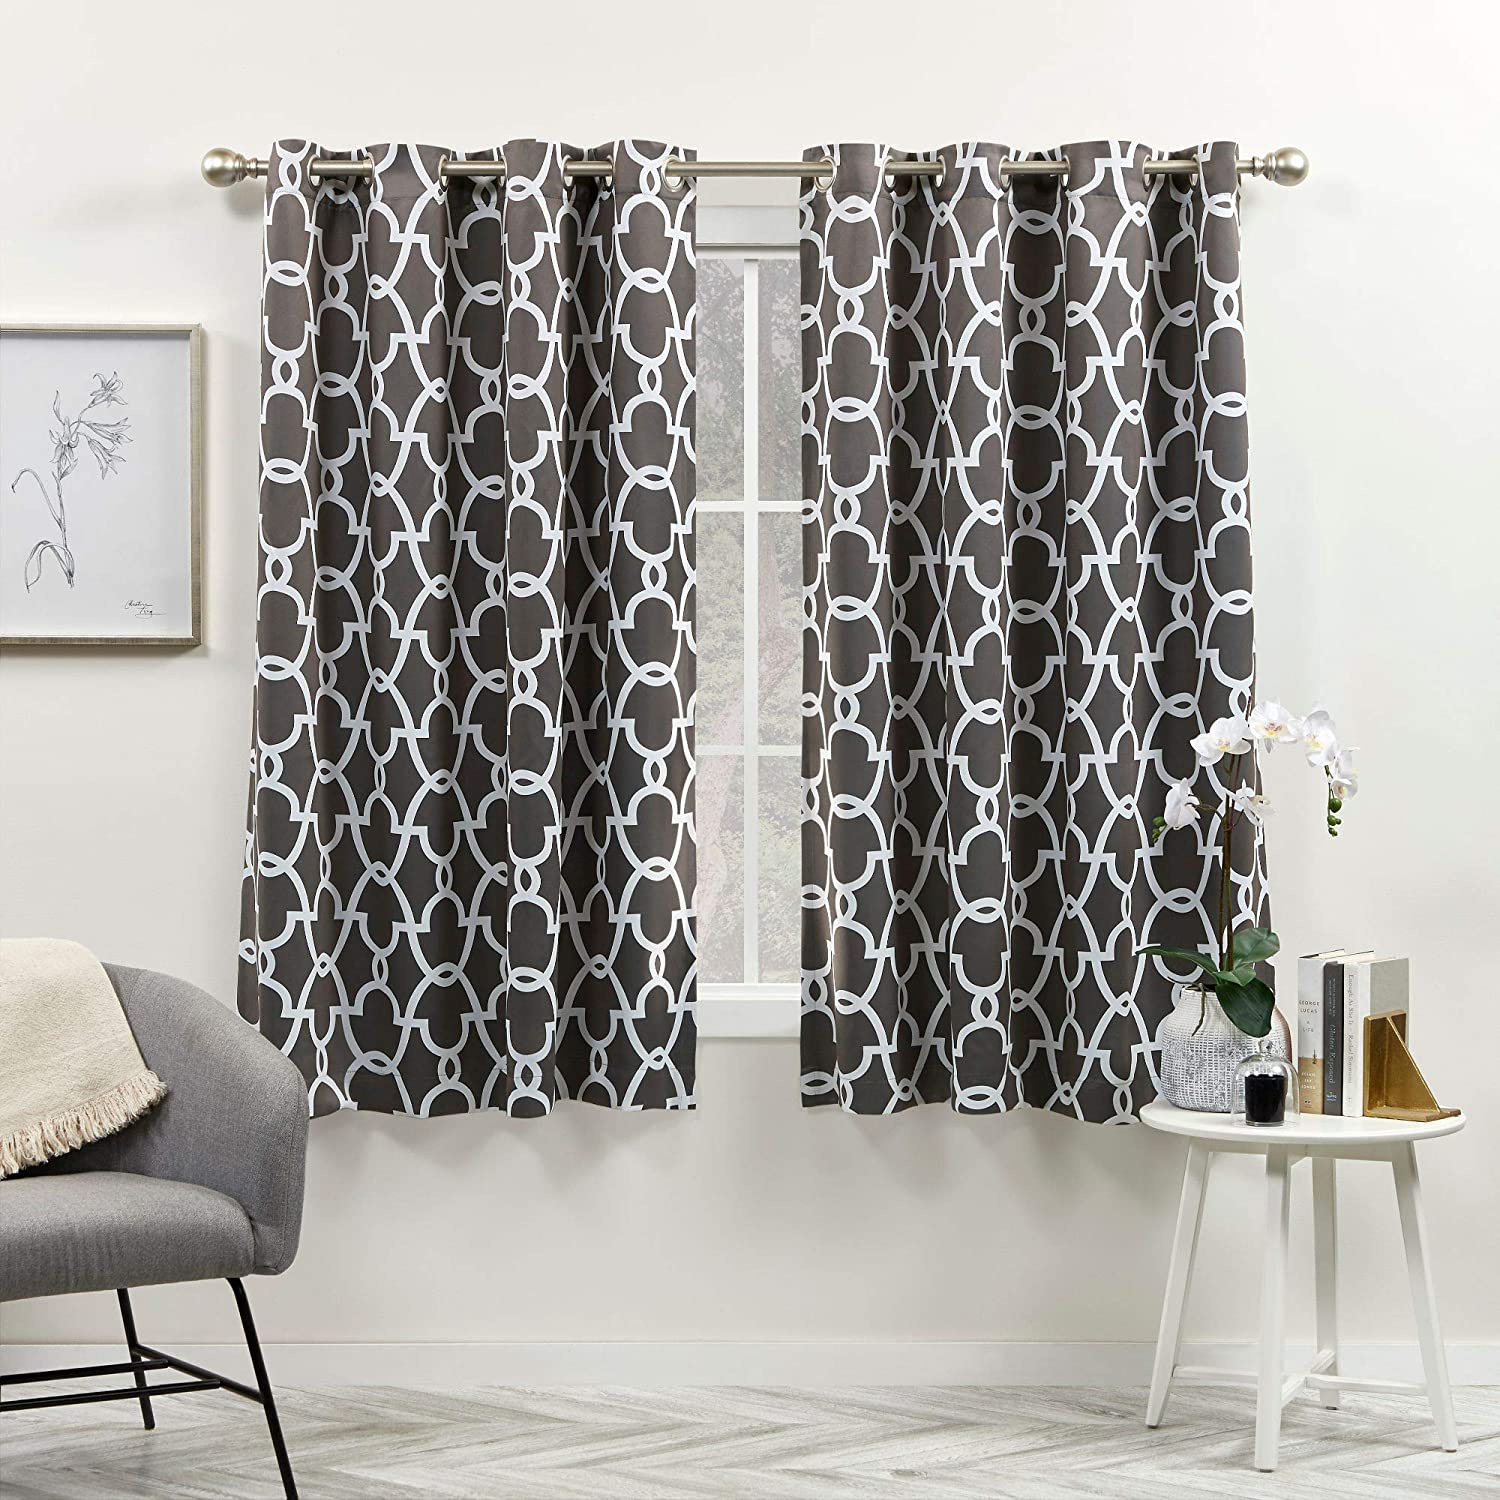 Exclusive Home Curtains Gates Sateen Blackout Thermal Window Curtain Panel Pair with Grommet Top, 52x63, Black Pearl, 2 Piece